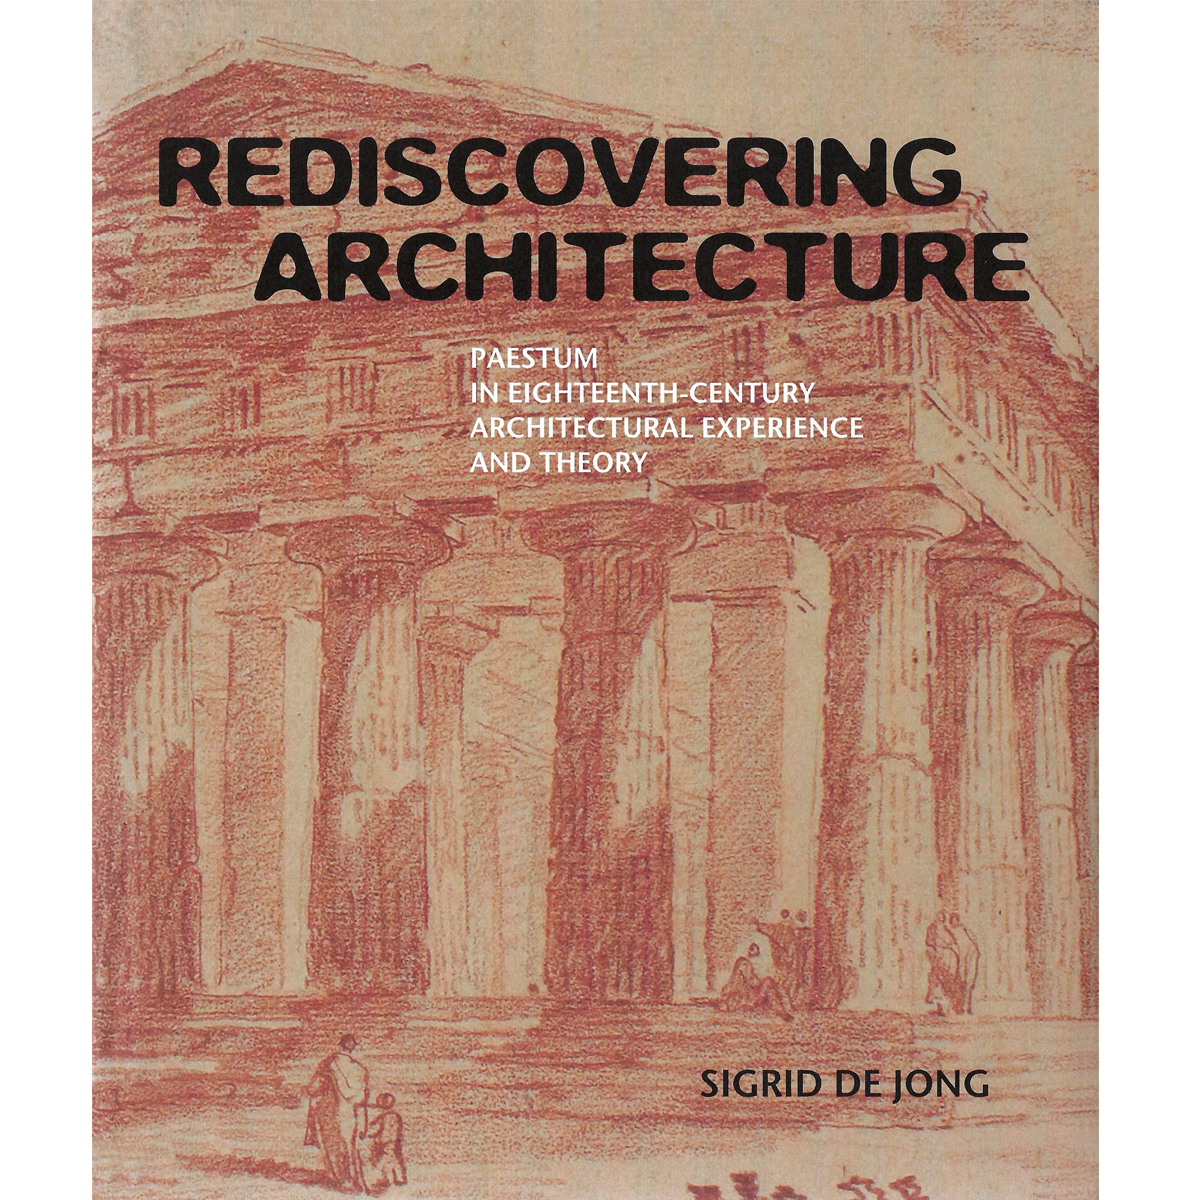 Rediscovering Architecture